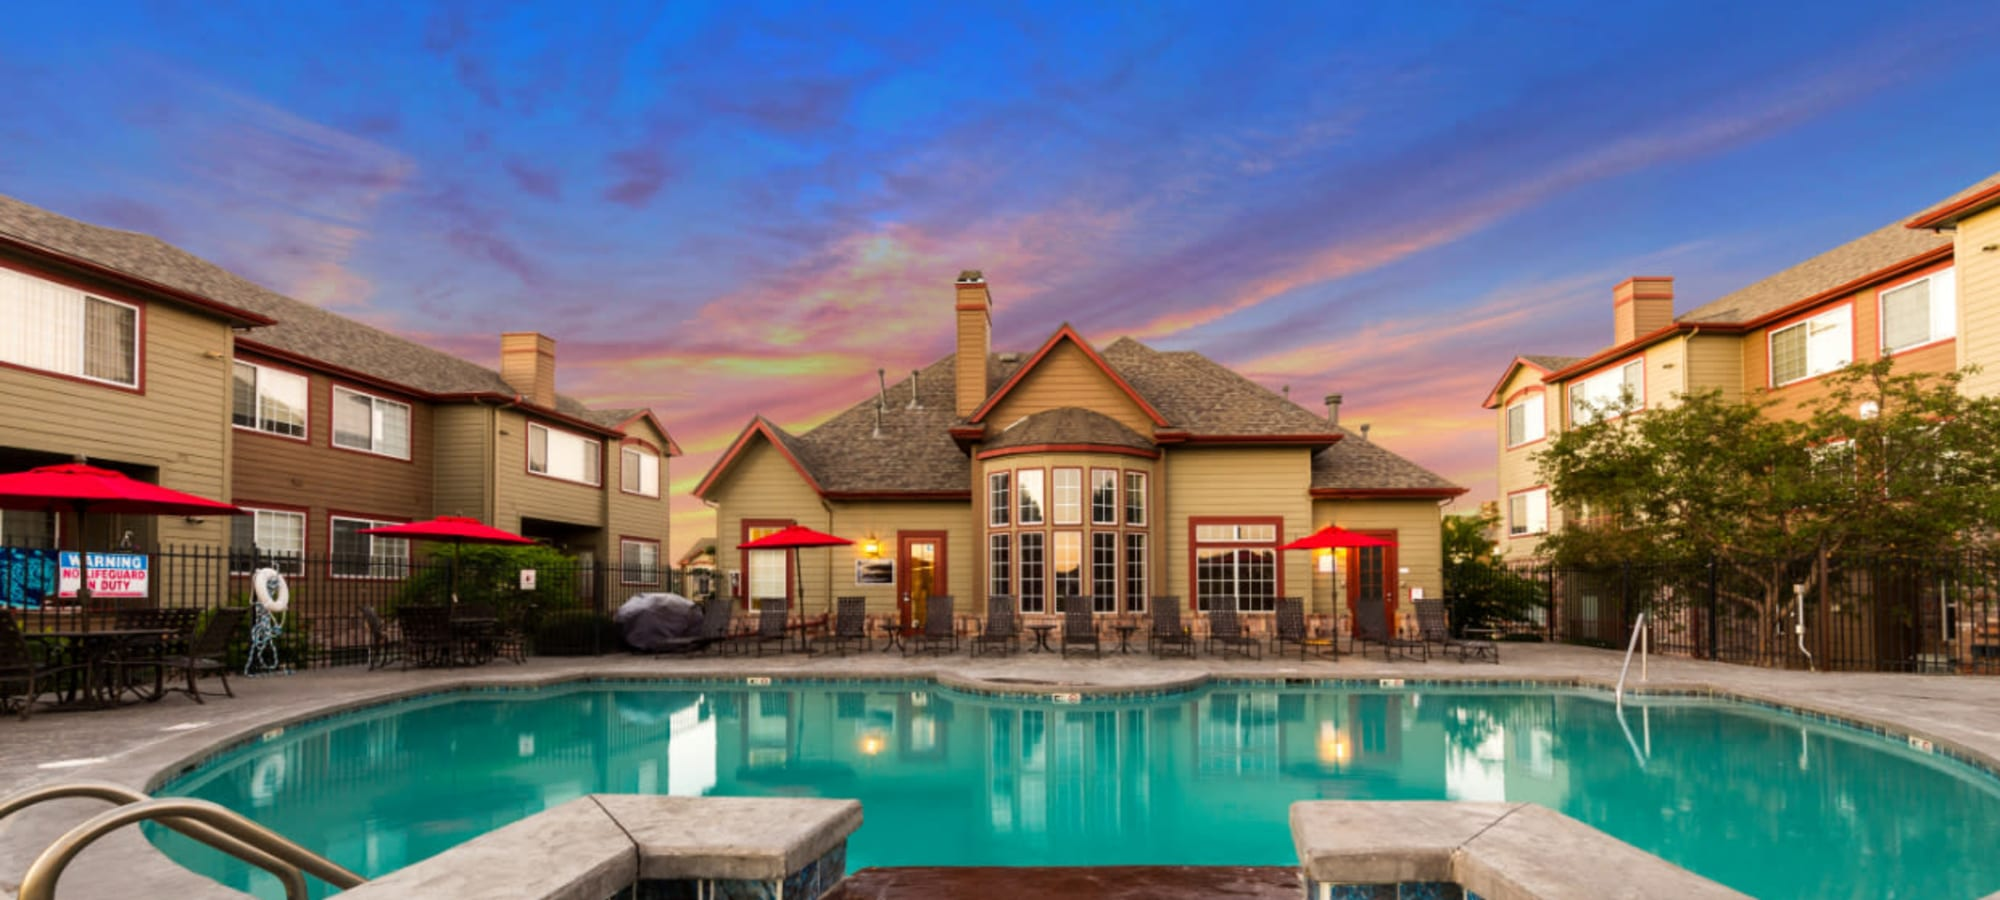 Apartments at The Links at Plum Creek in Castle Rock, Colorado